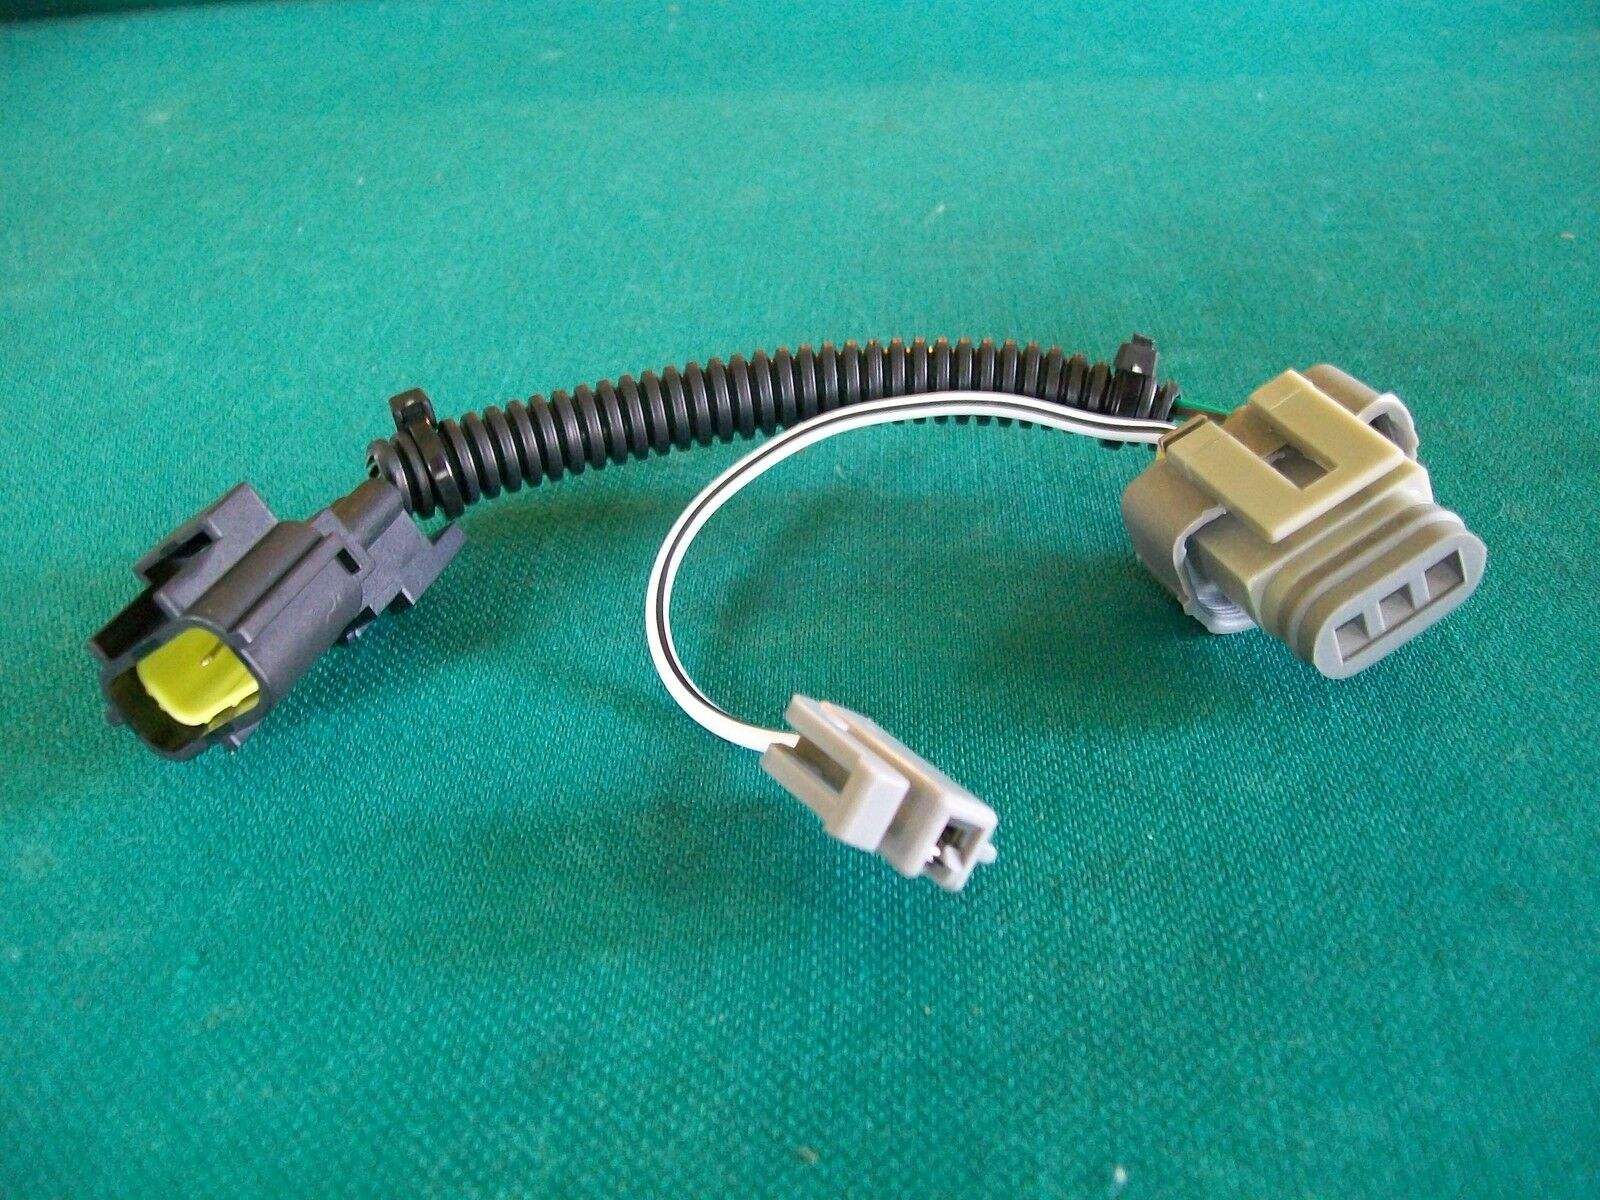 Alternator Plug Harness Conversion Lead Adapter For Ford 6g To 3g W Wiring Specialties 2jzgte Bmw E36 Pro 1 Of 3only 5 Available